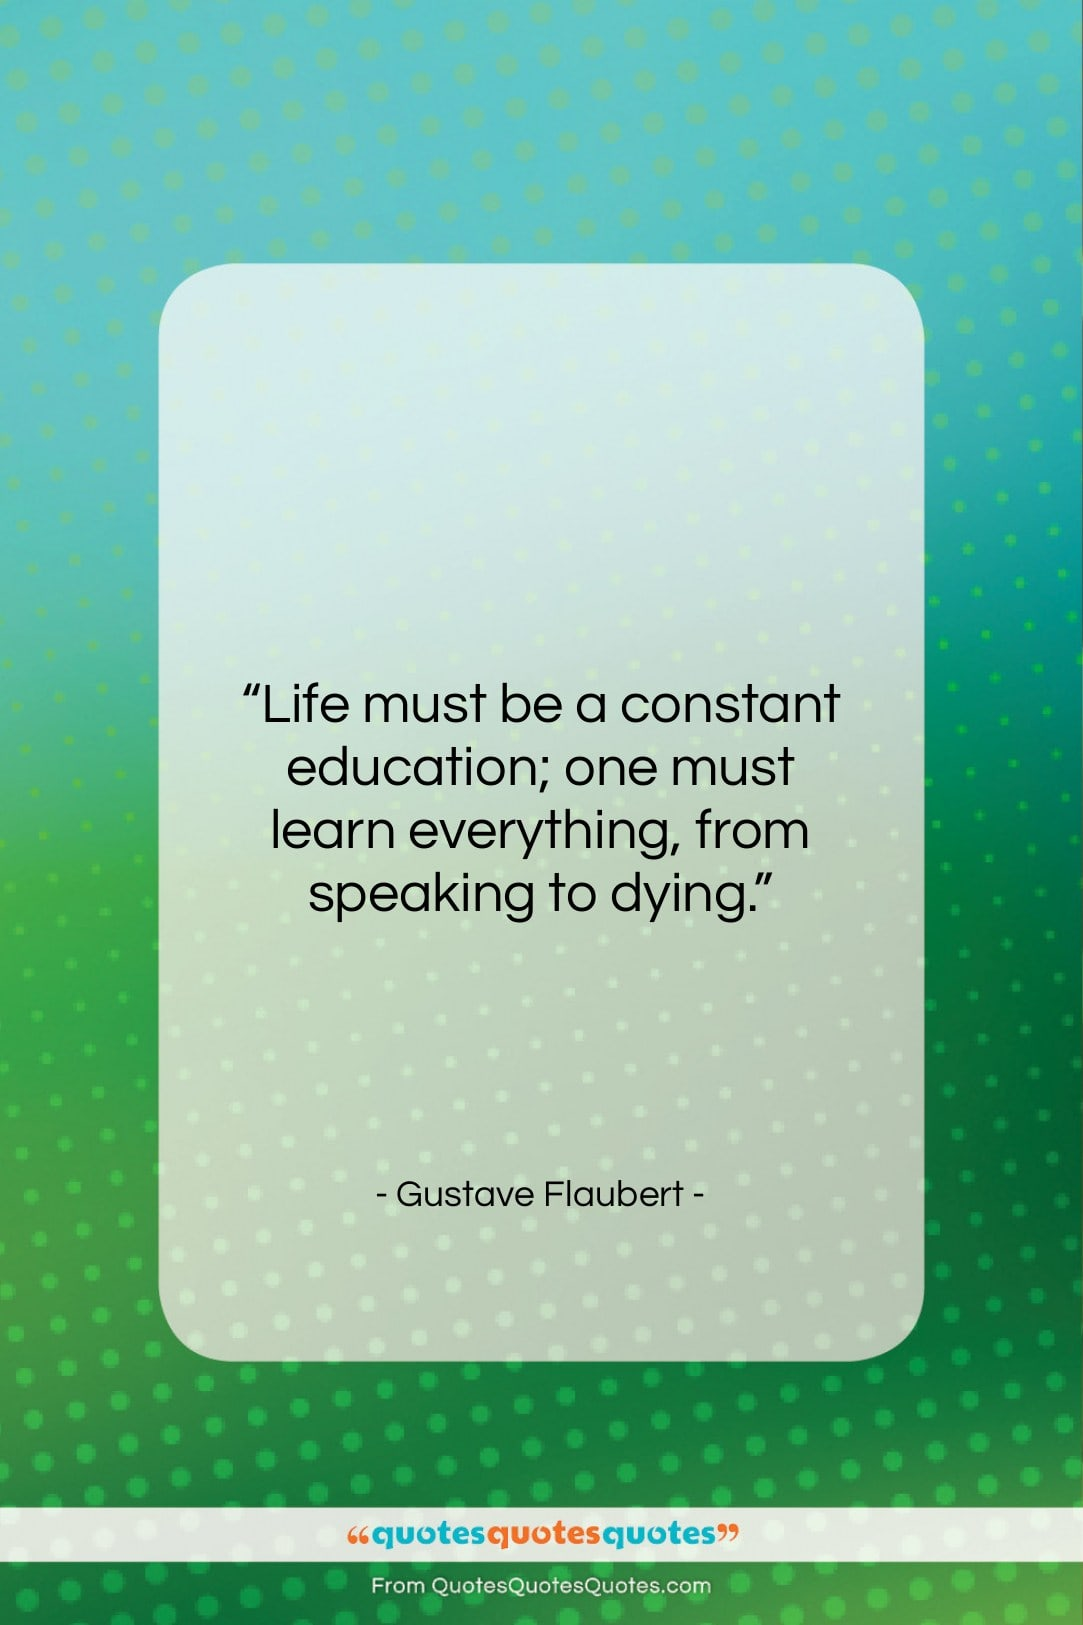 """Gustave Flaubert quote: """"Life must be a constant education; one…""""- at QuotesQuotesQuotes.com"""